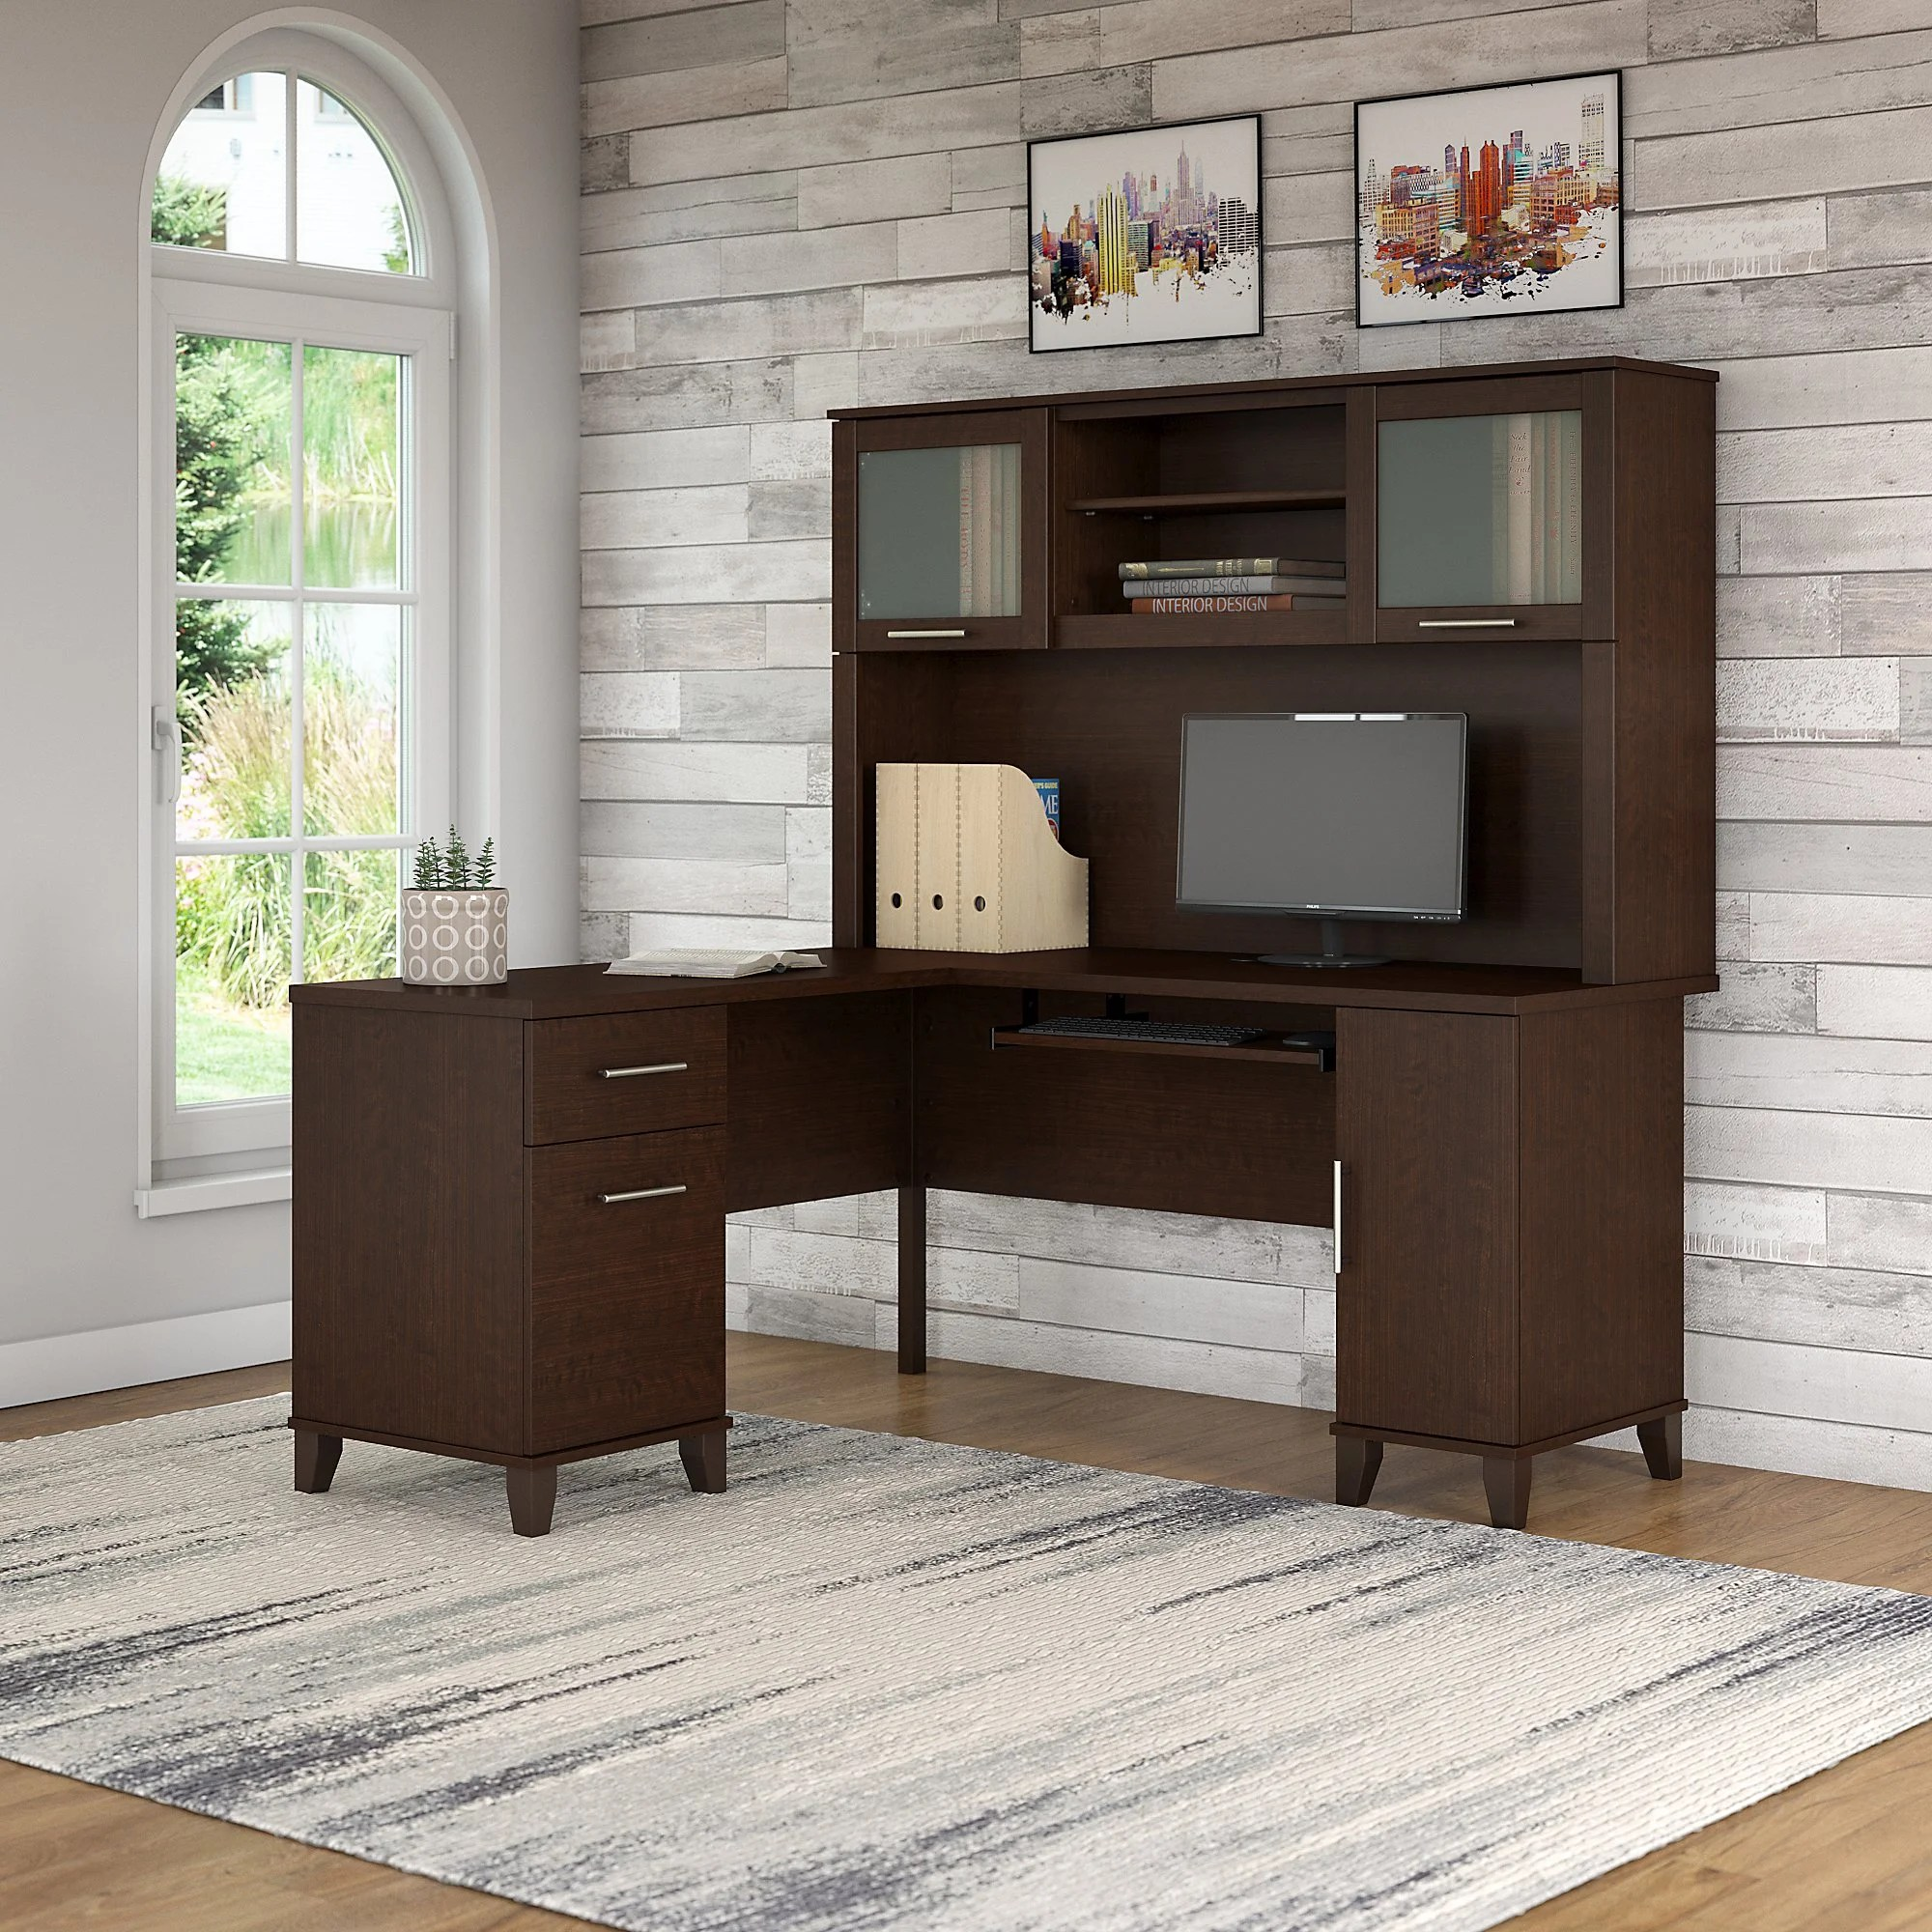 Executive L Shaped Desk Kittle Somerset L Shaped Executive Desk With Hutch